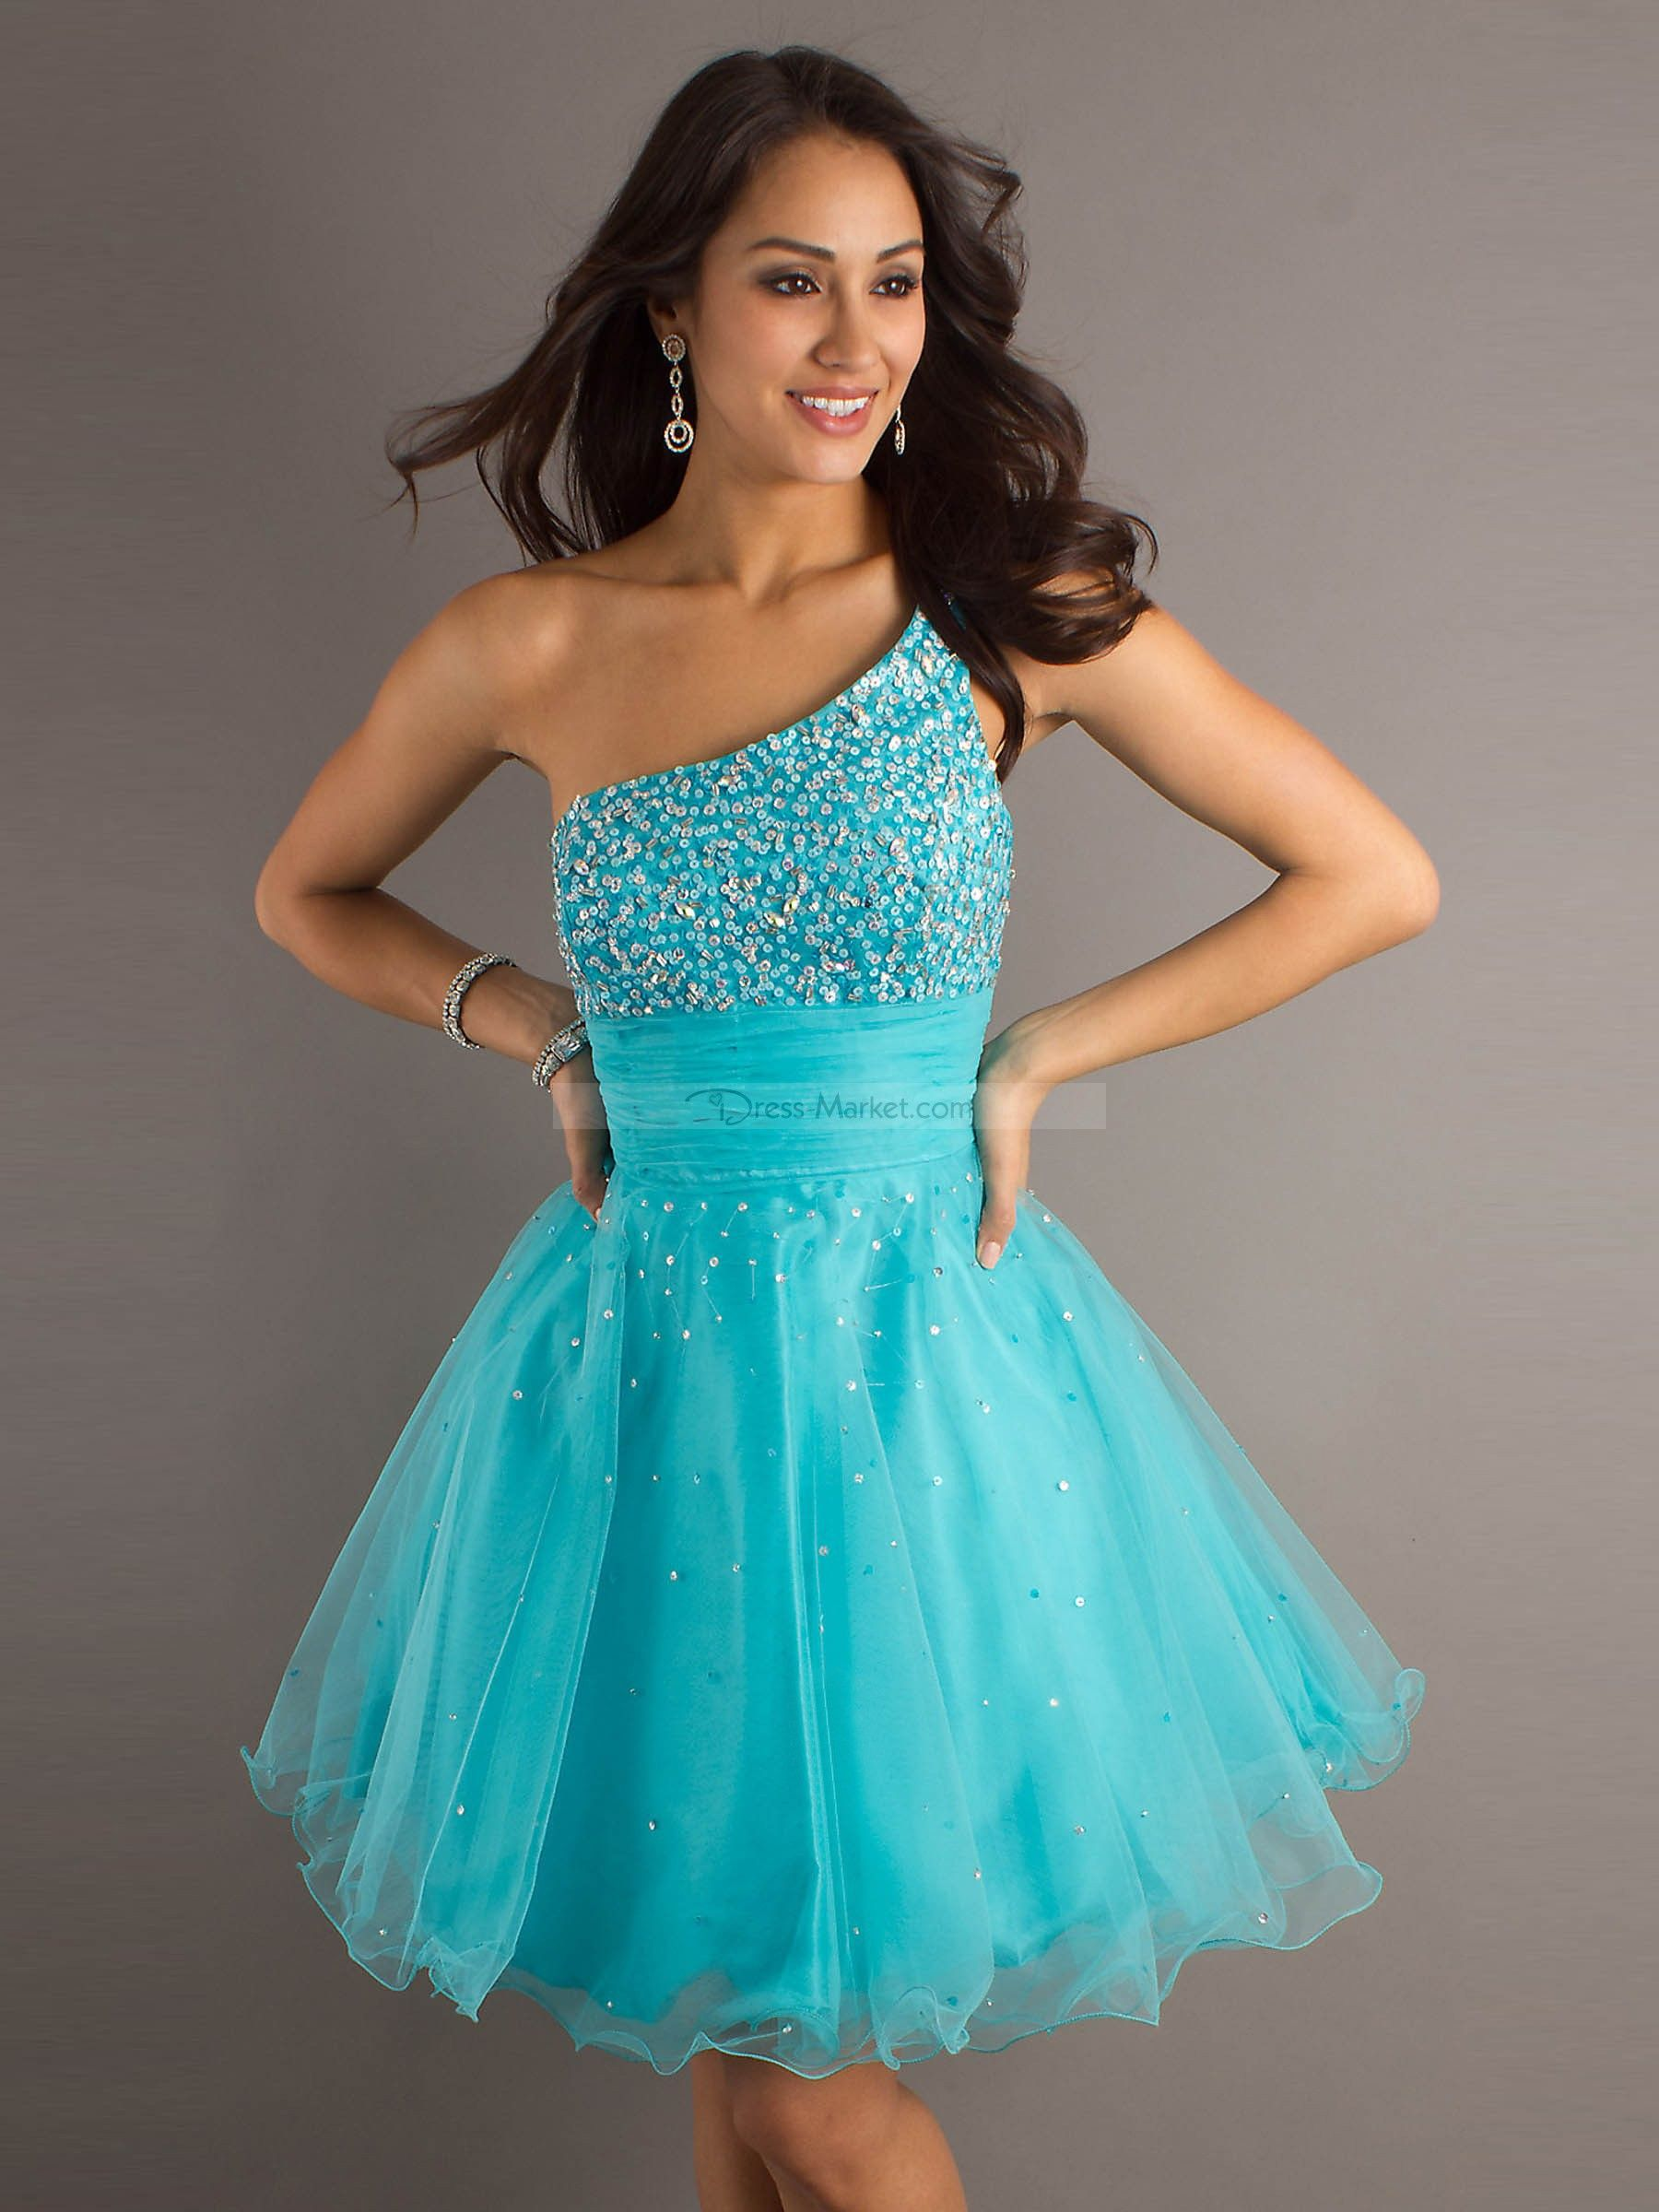 Homecoming Dresses | ... Own Cheap Homecoming Dresses 2012 - Posts ...